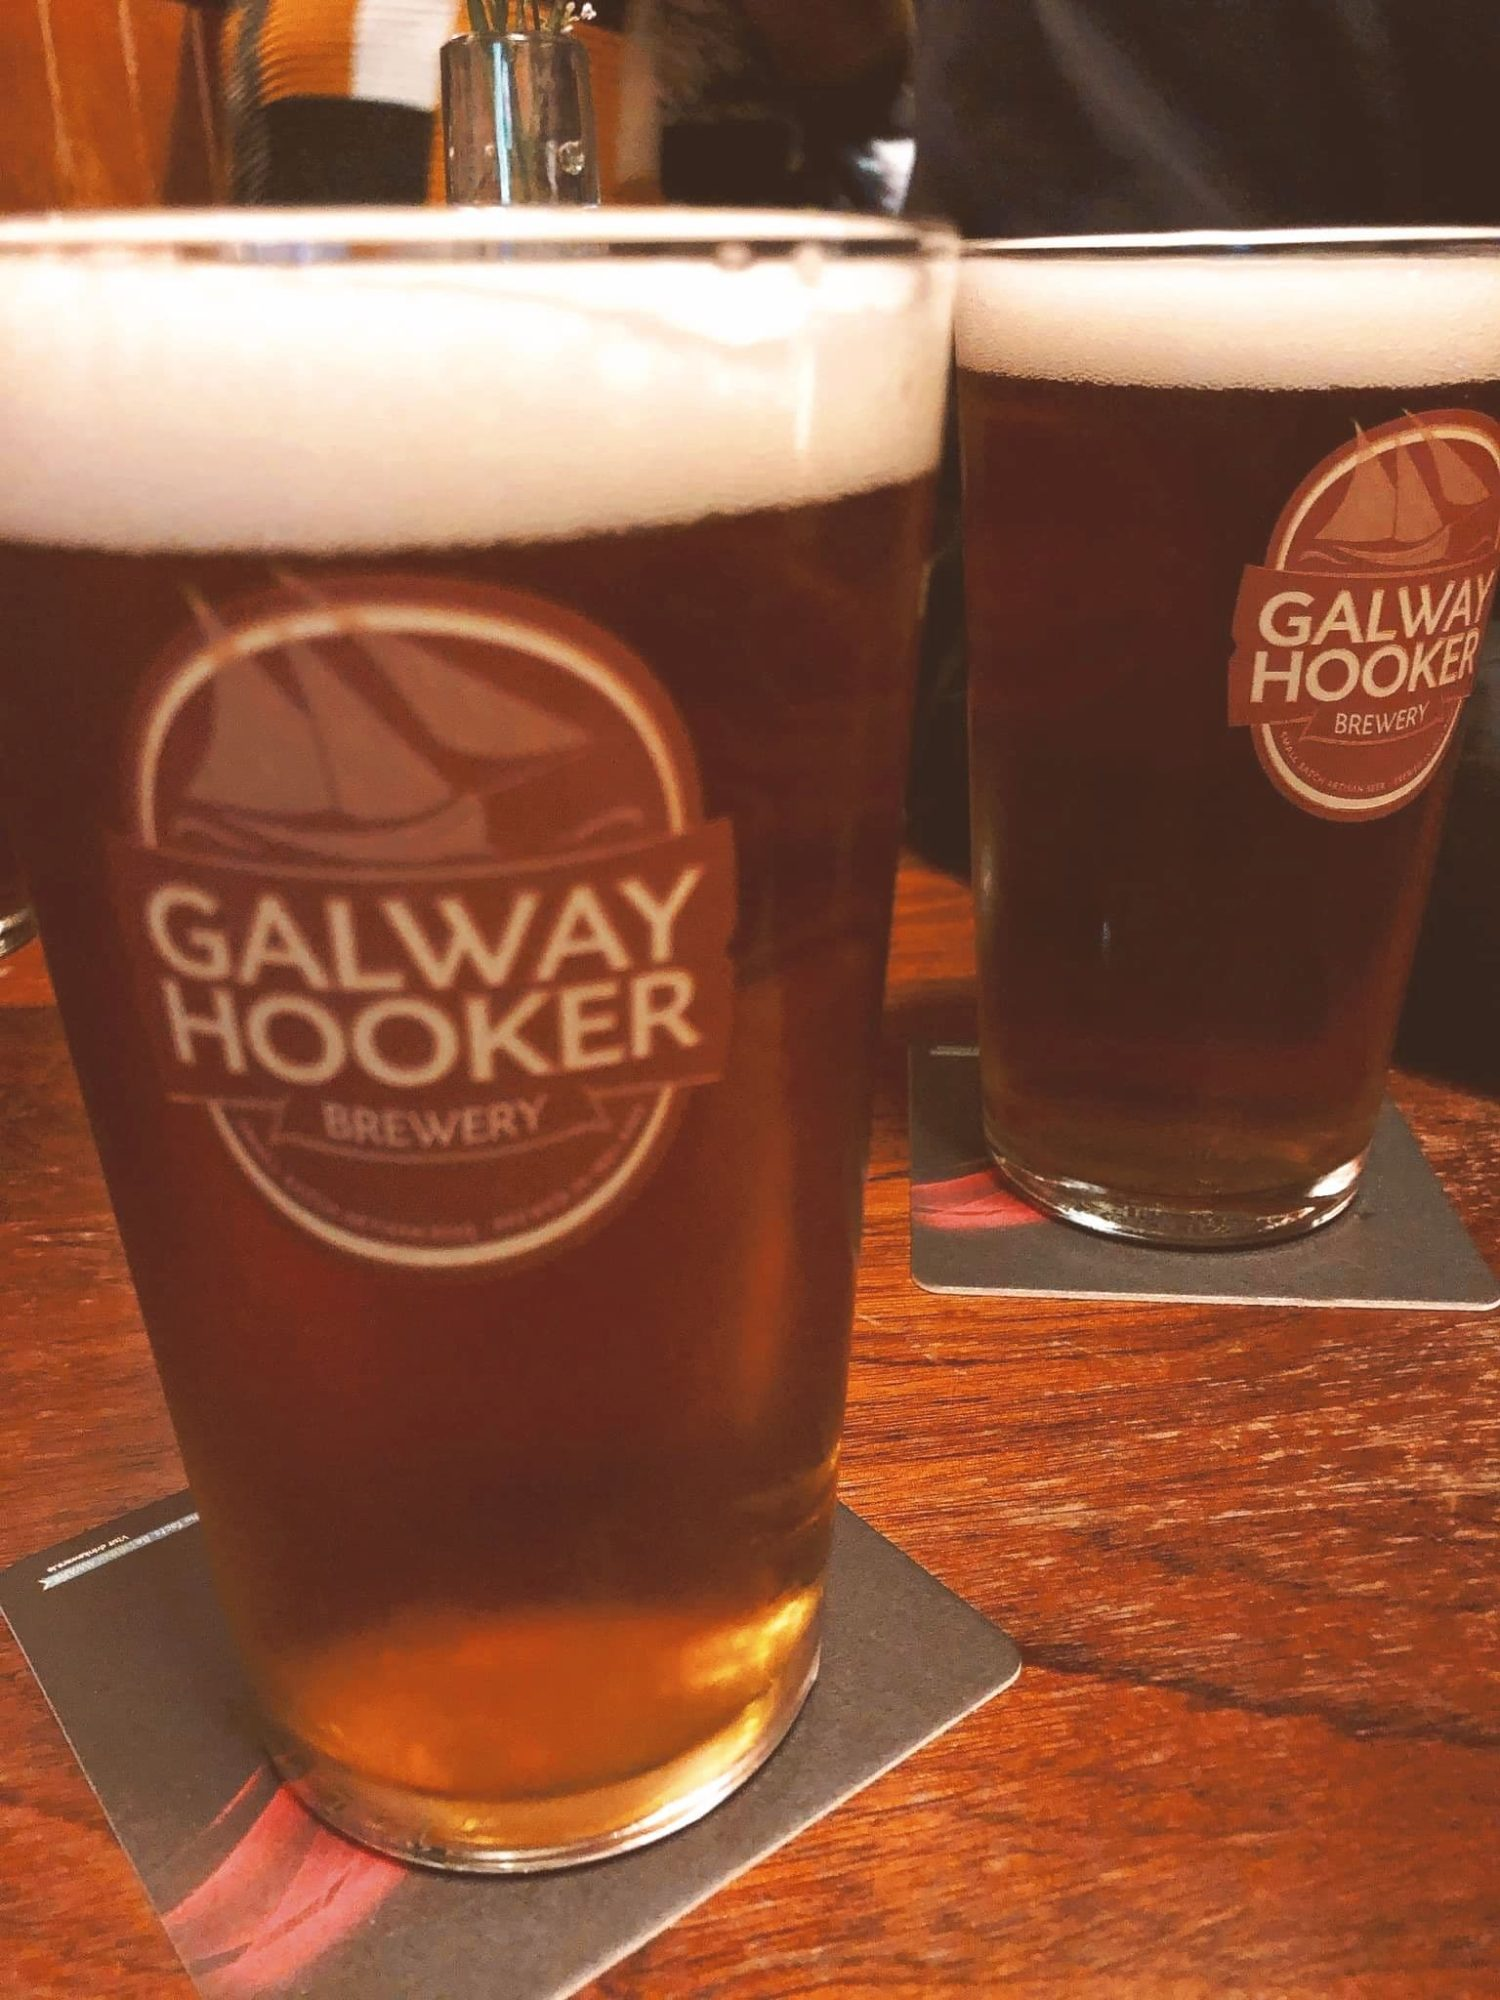 Two Galway Hookers (beers) on a table in an Irish pub..